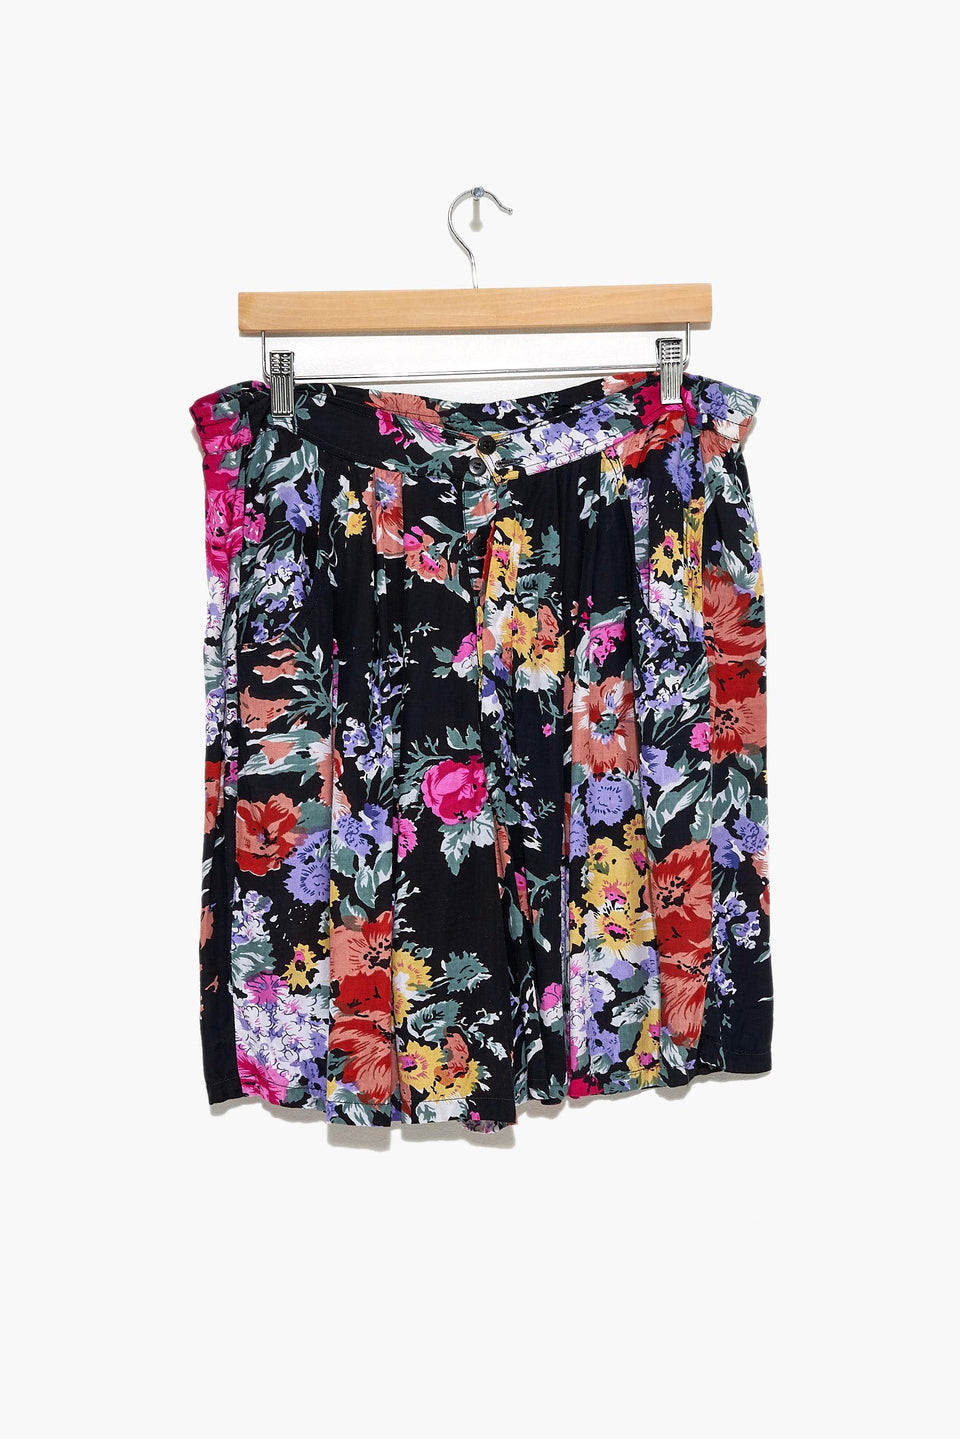 90s FLOWERS Shorts